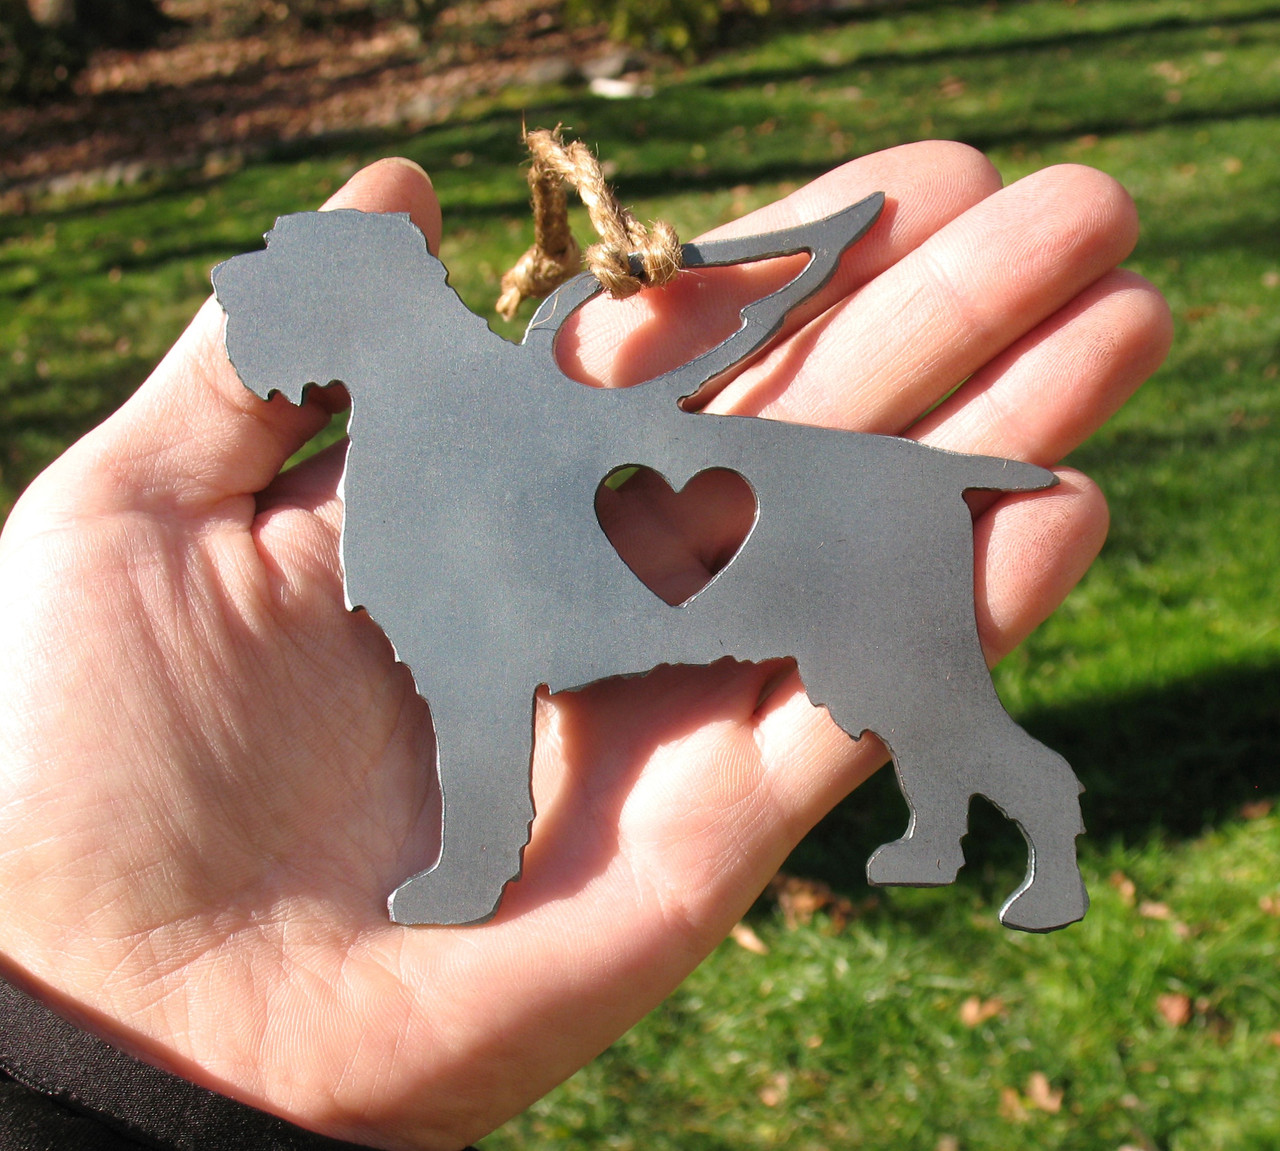 Wirehaired Pointing Griffon Pet Loss Gift Ornament Angel - Pet Memorial - Dog Sympathy Remembrance Gift - Metal Dog Christmas Ornament